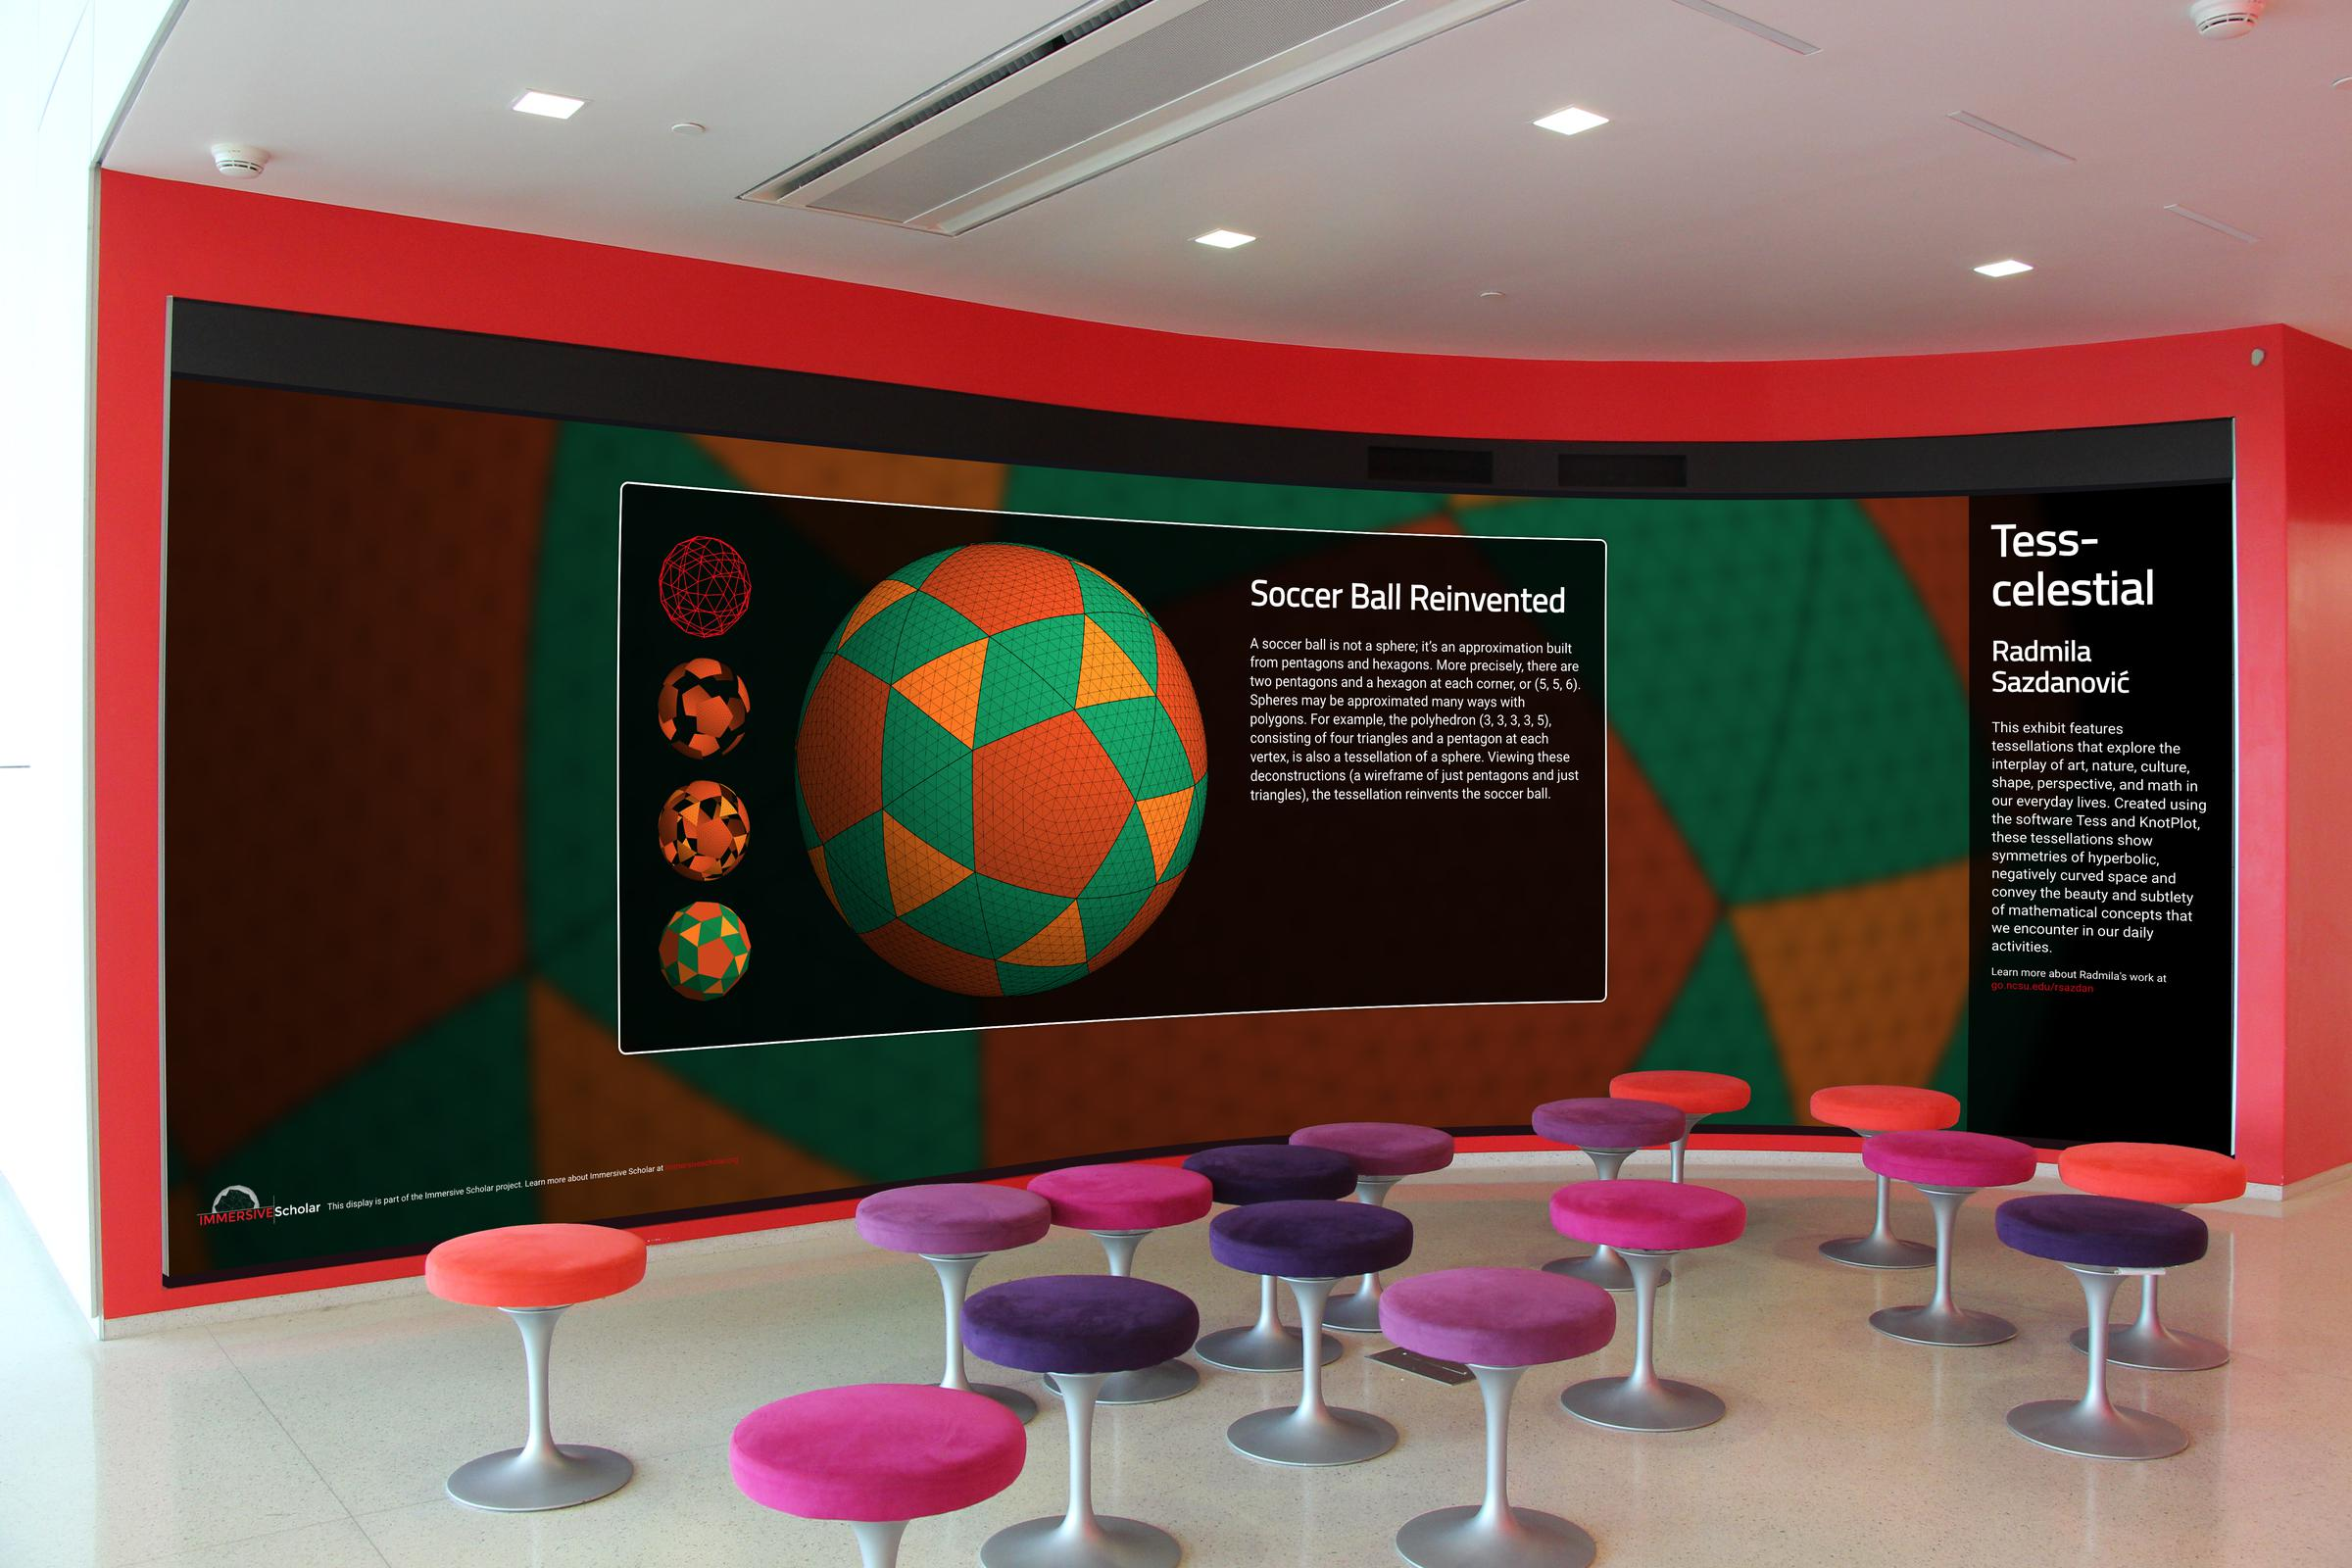 Immersion Theater screen displaying a geometric graphic labeled Soccer Ball Reinvented